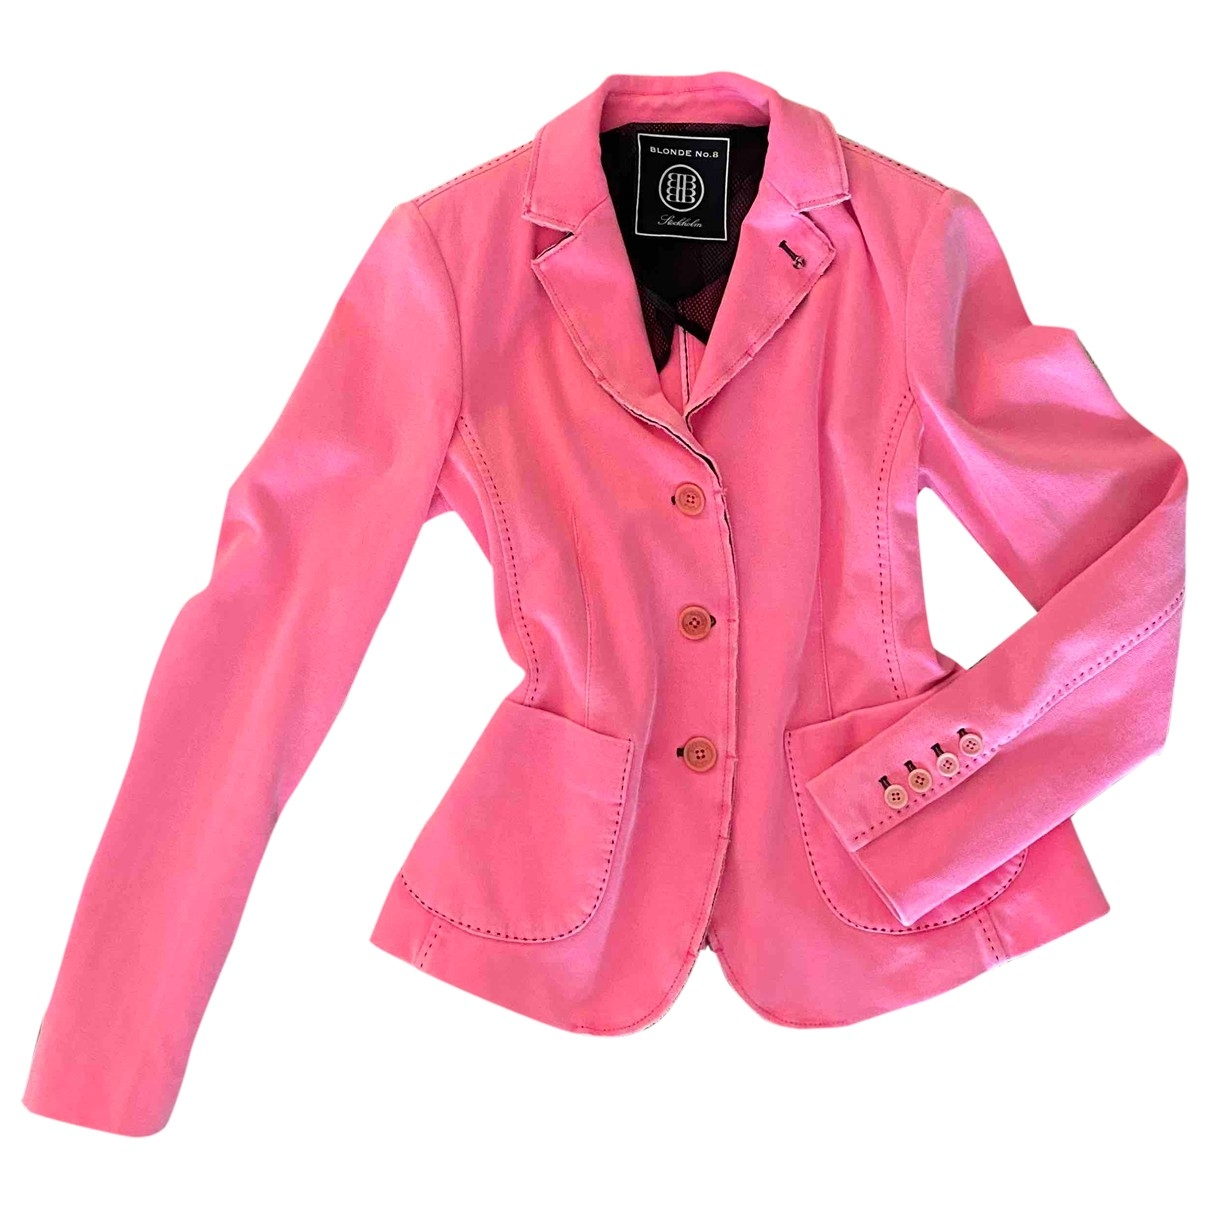 Blonde No.8 \N Cotton jacket for Women L International